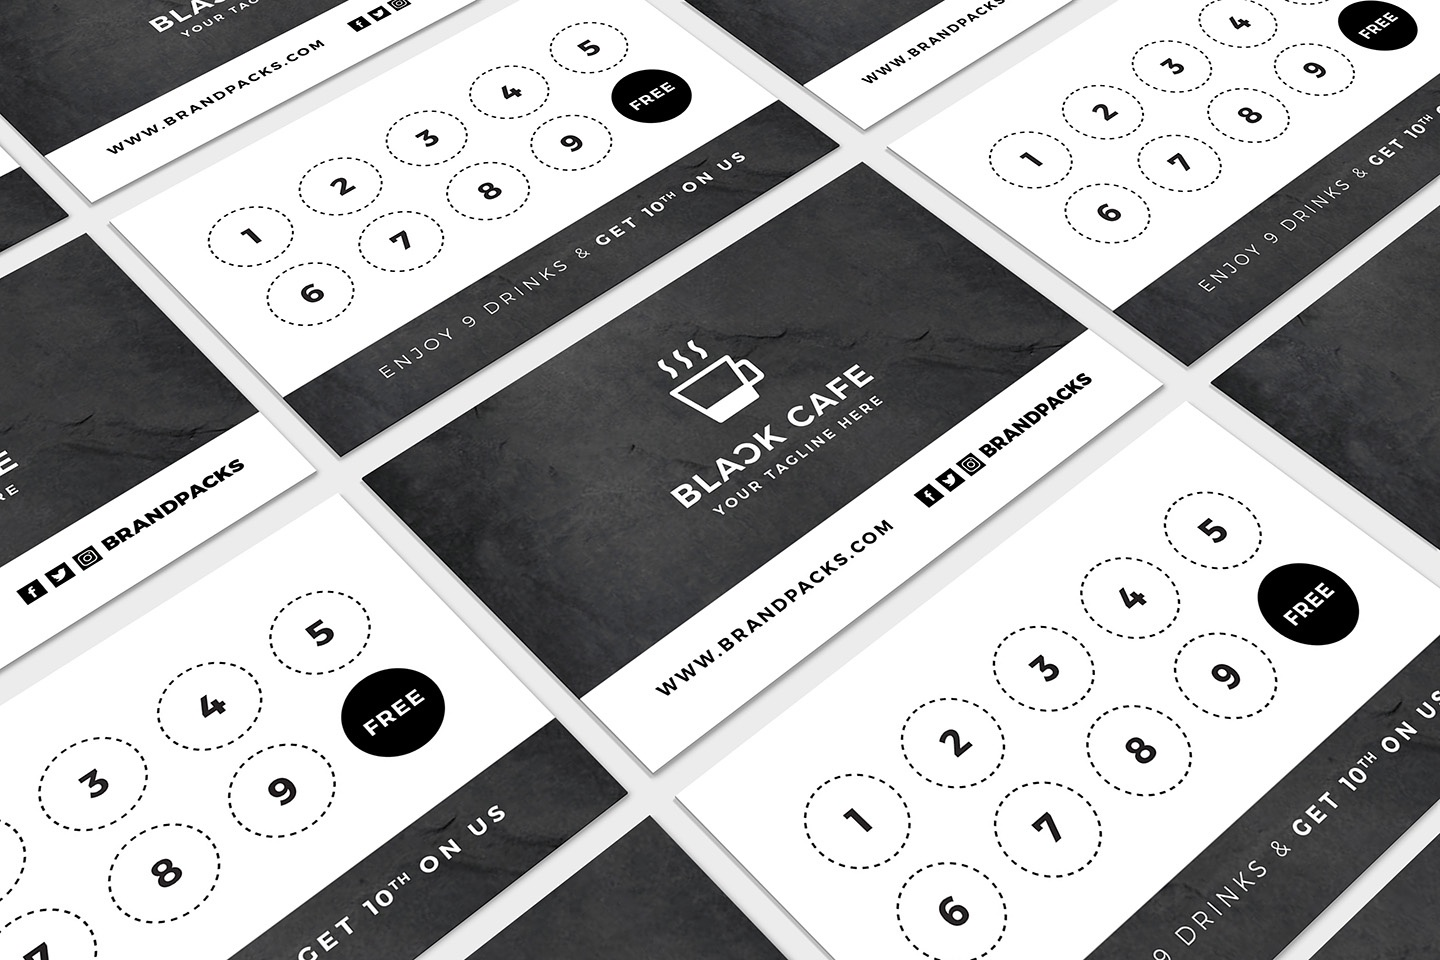 Free Loyalty Card Templates - Psd, Ai & Vector - Brandpacks - Free Printable Loyalty Card Template